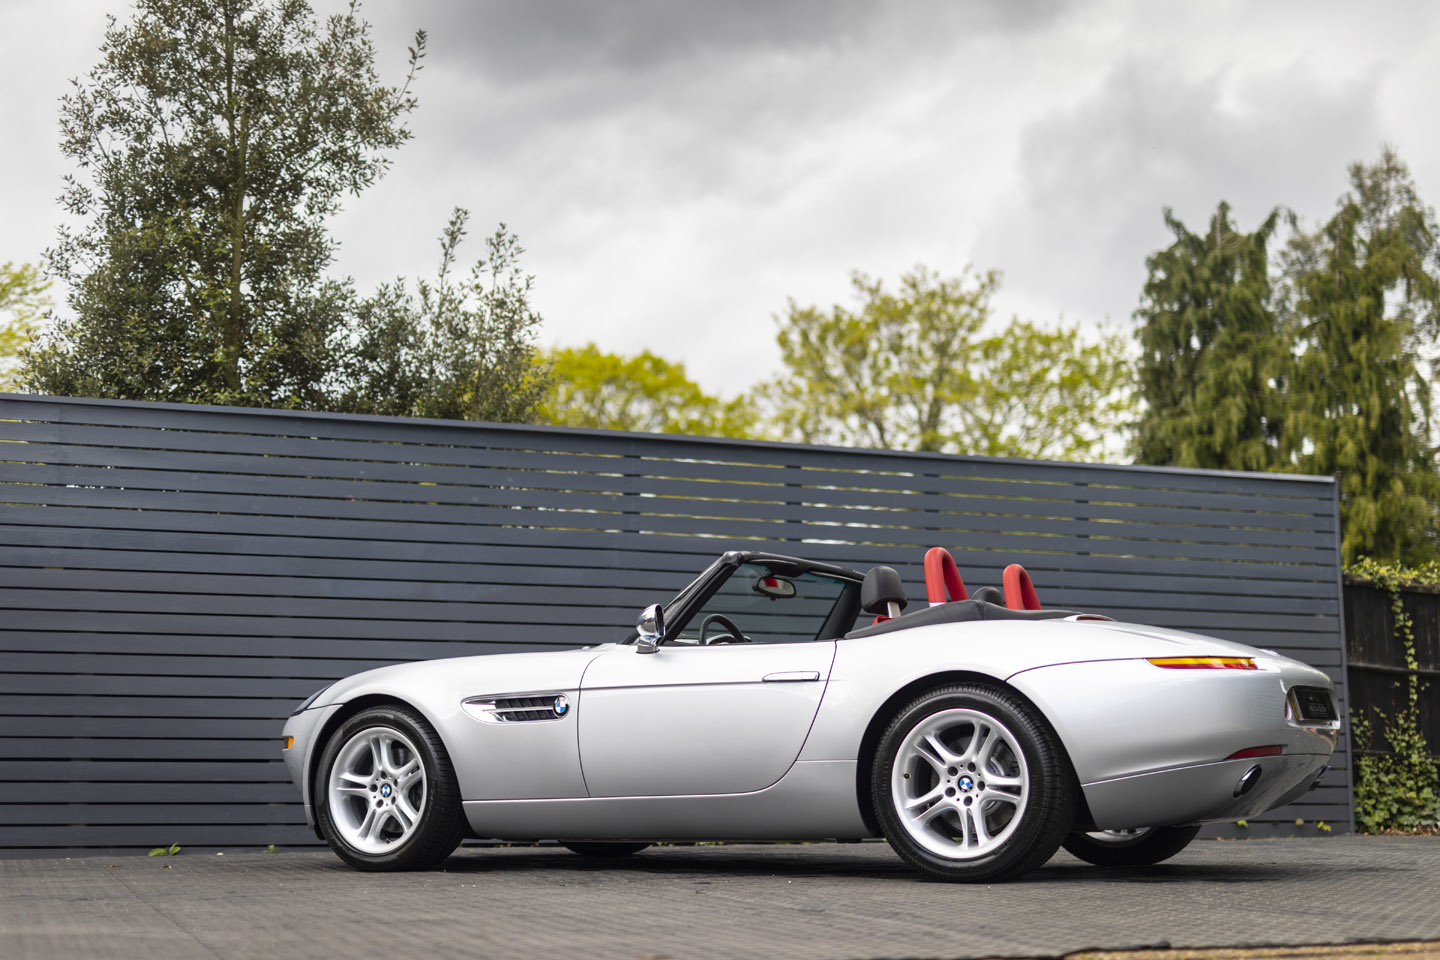 2001 BMW Z8 Roadster ONLY 10500 MILES UK CAR For Sale (picture 21 of 22)